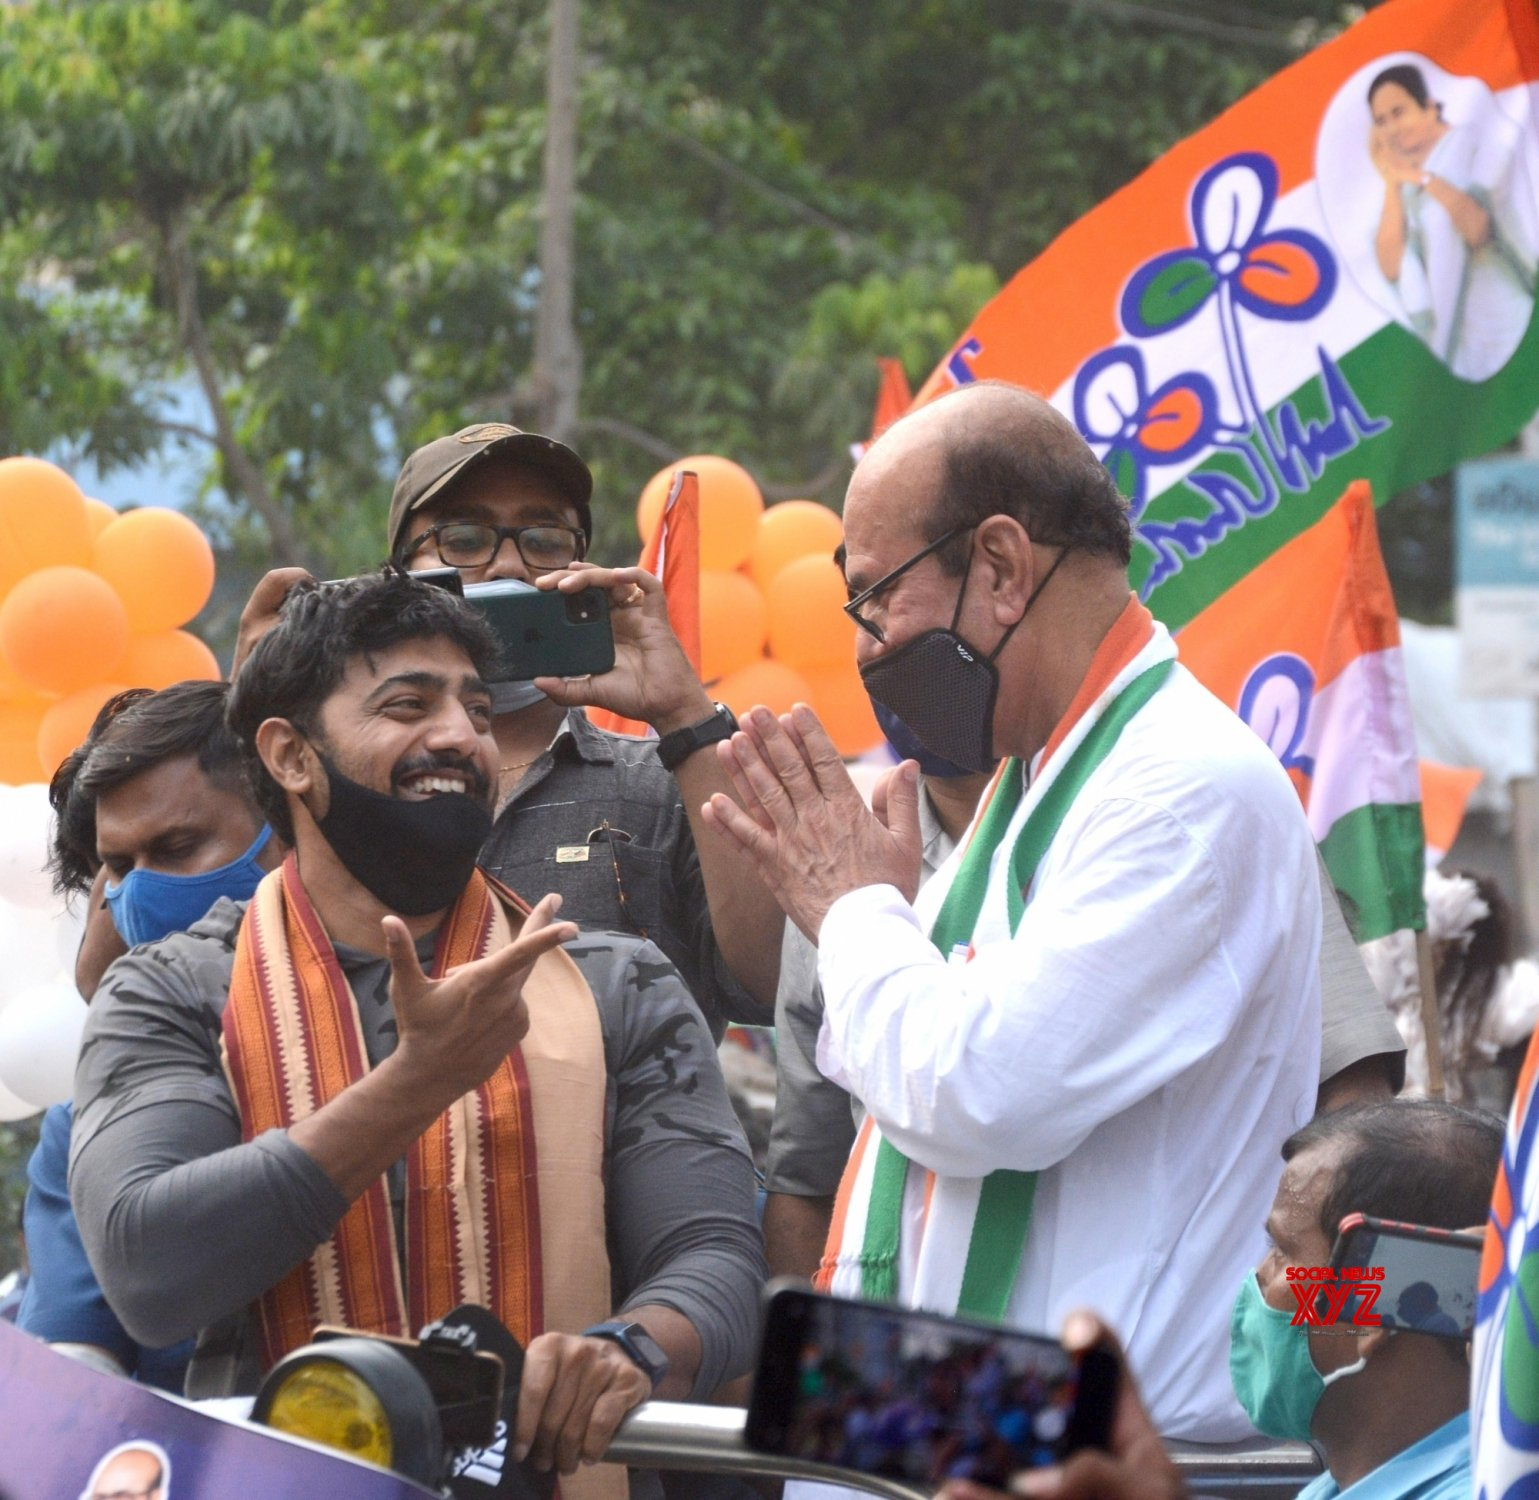 Kolkata: TMC M.P Dev at a roadshow along with the party candidate Javed Ahamed Khan, ahead of the 4th phase of State Assembly election in Kolkata. #Gallery